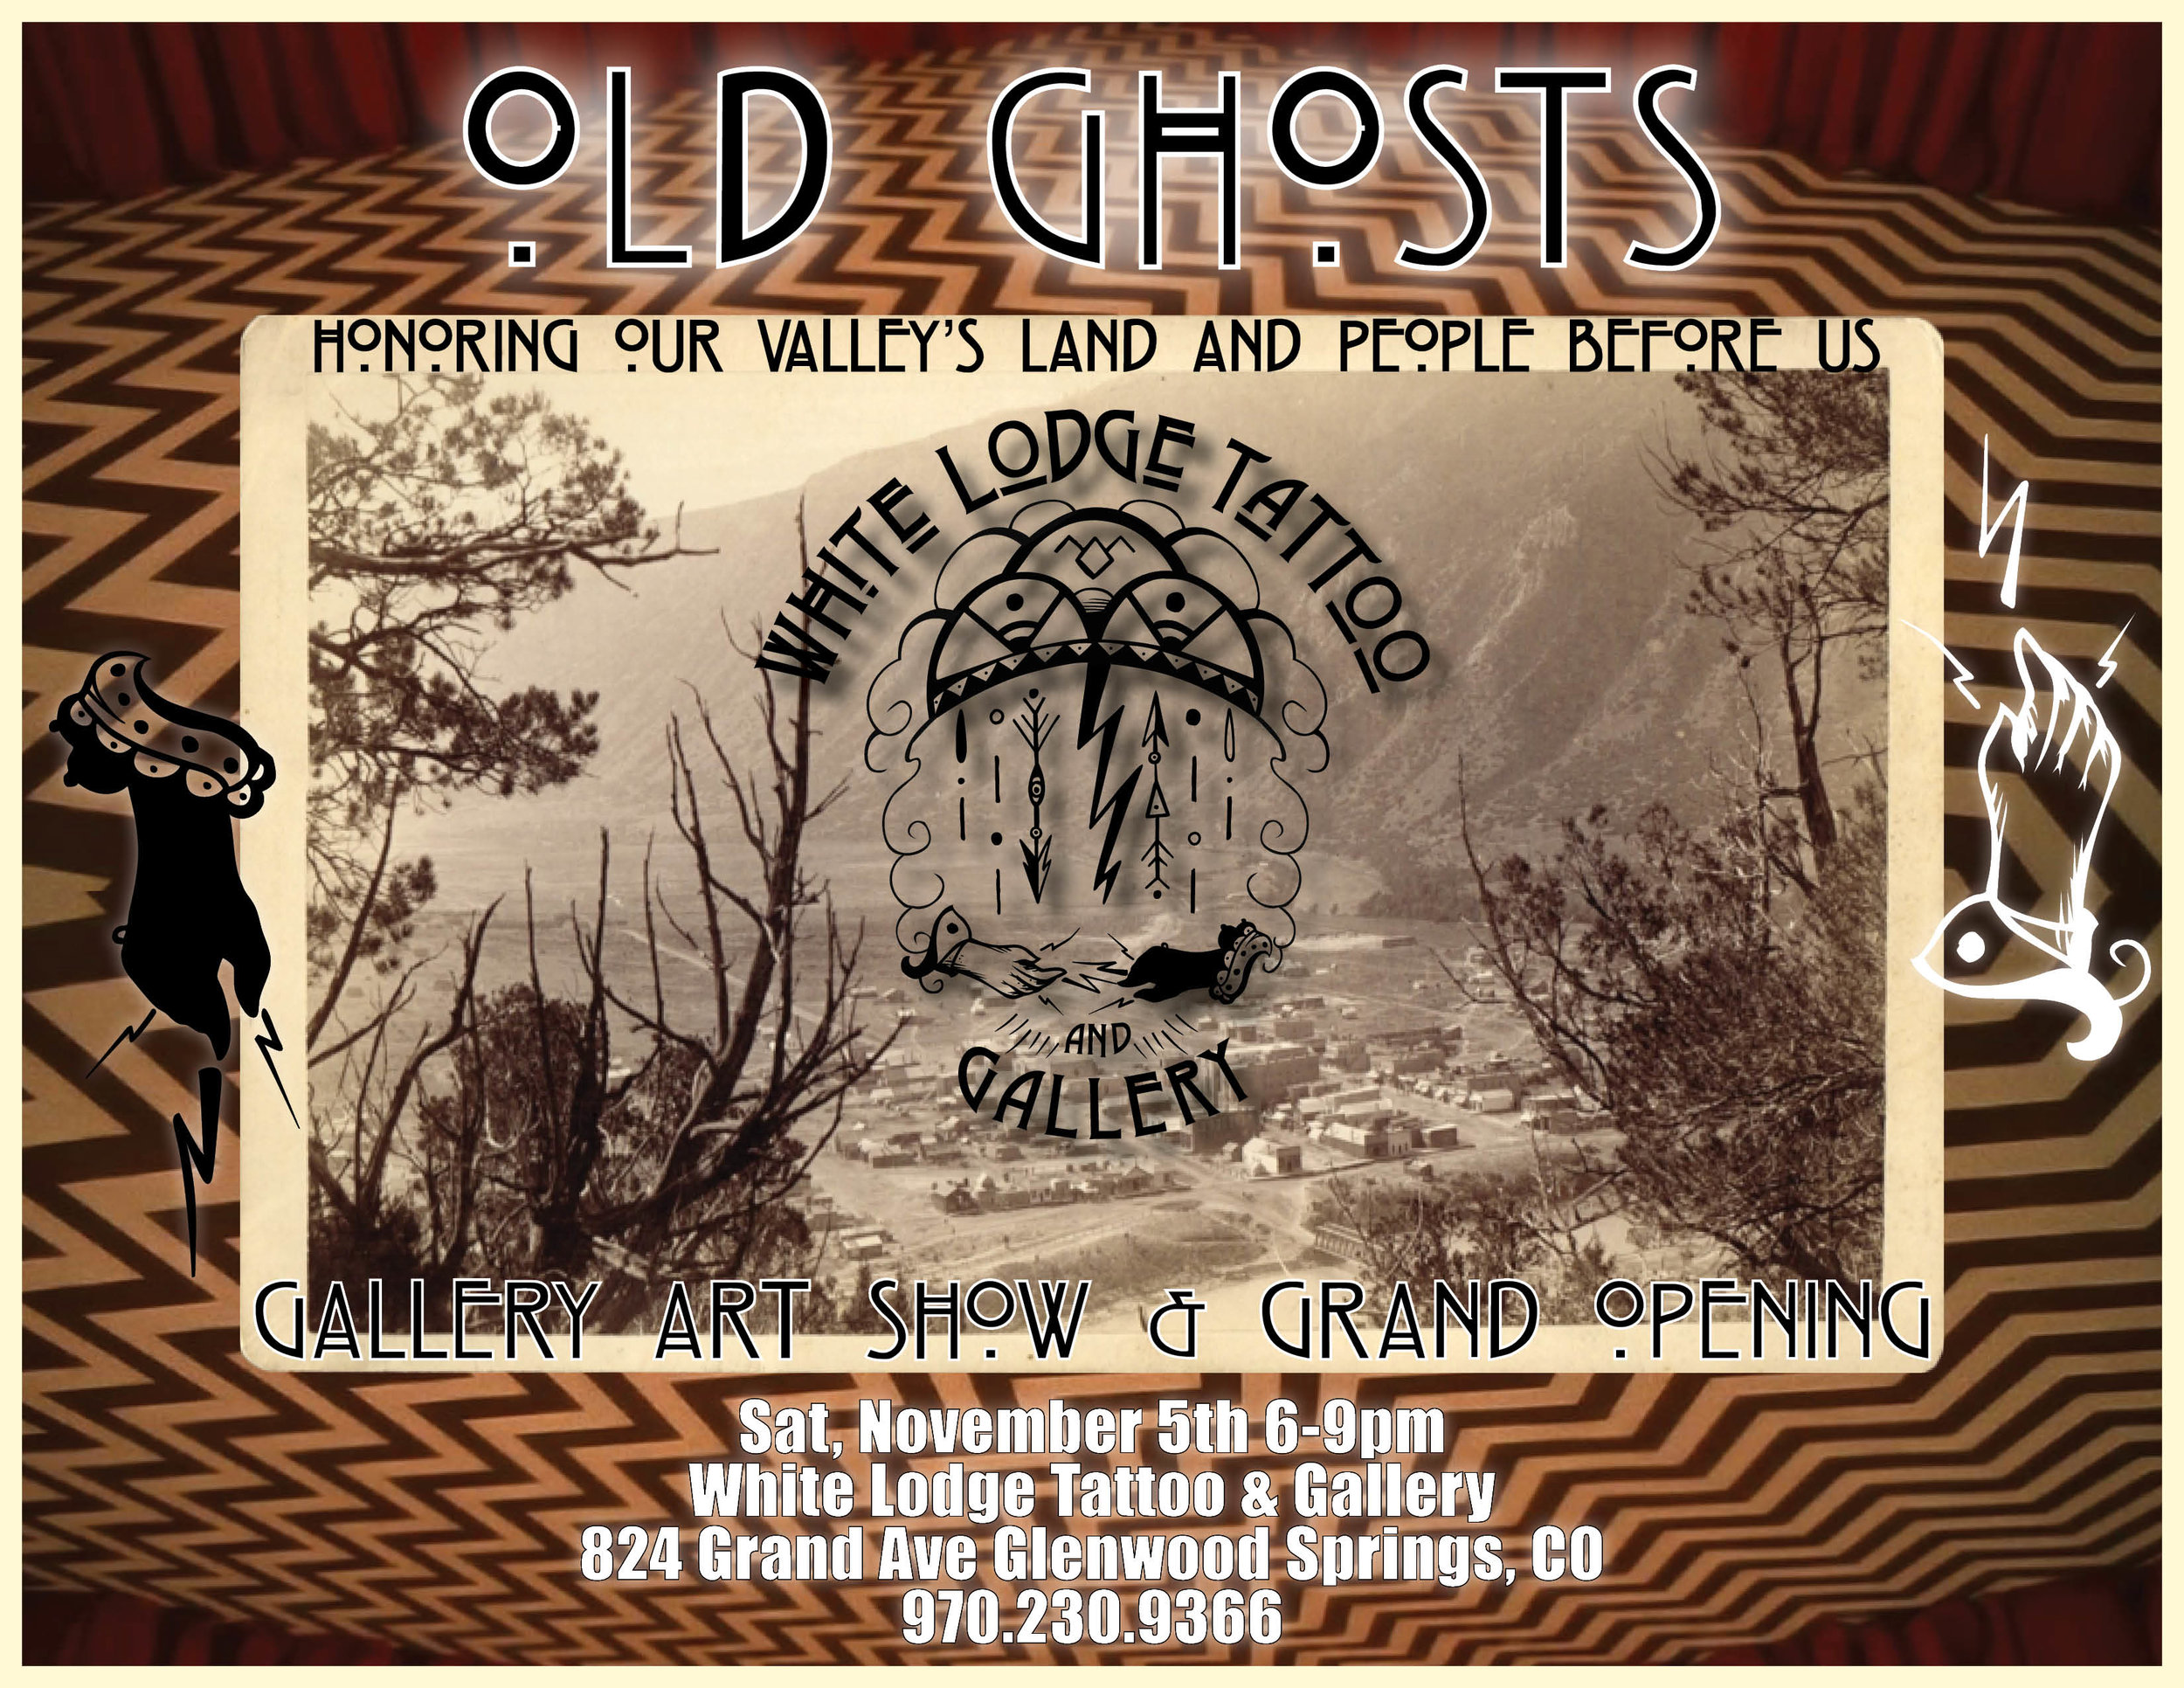 Event poster for White Lodge Tattoo and Gallery Grand Opening and art show